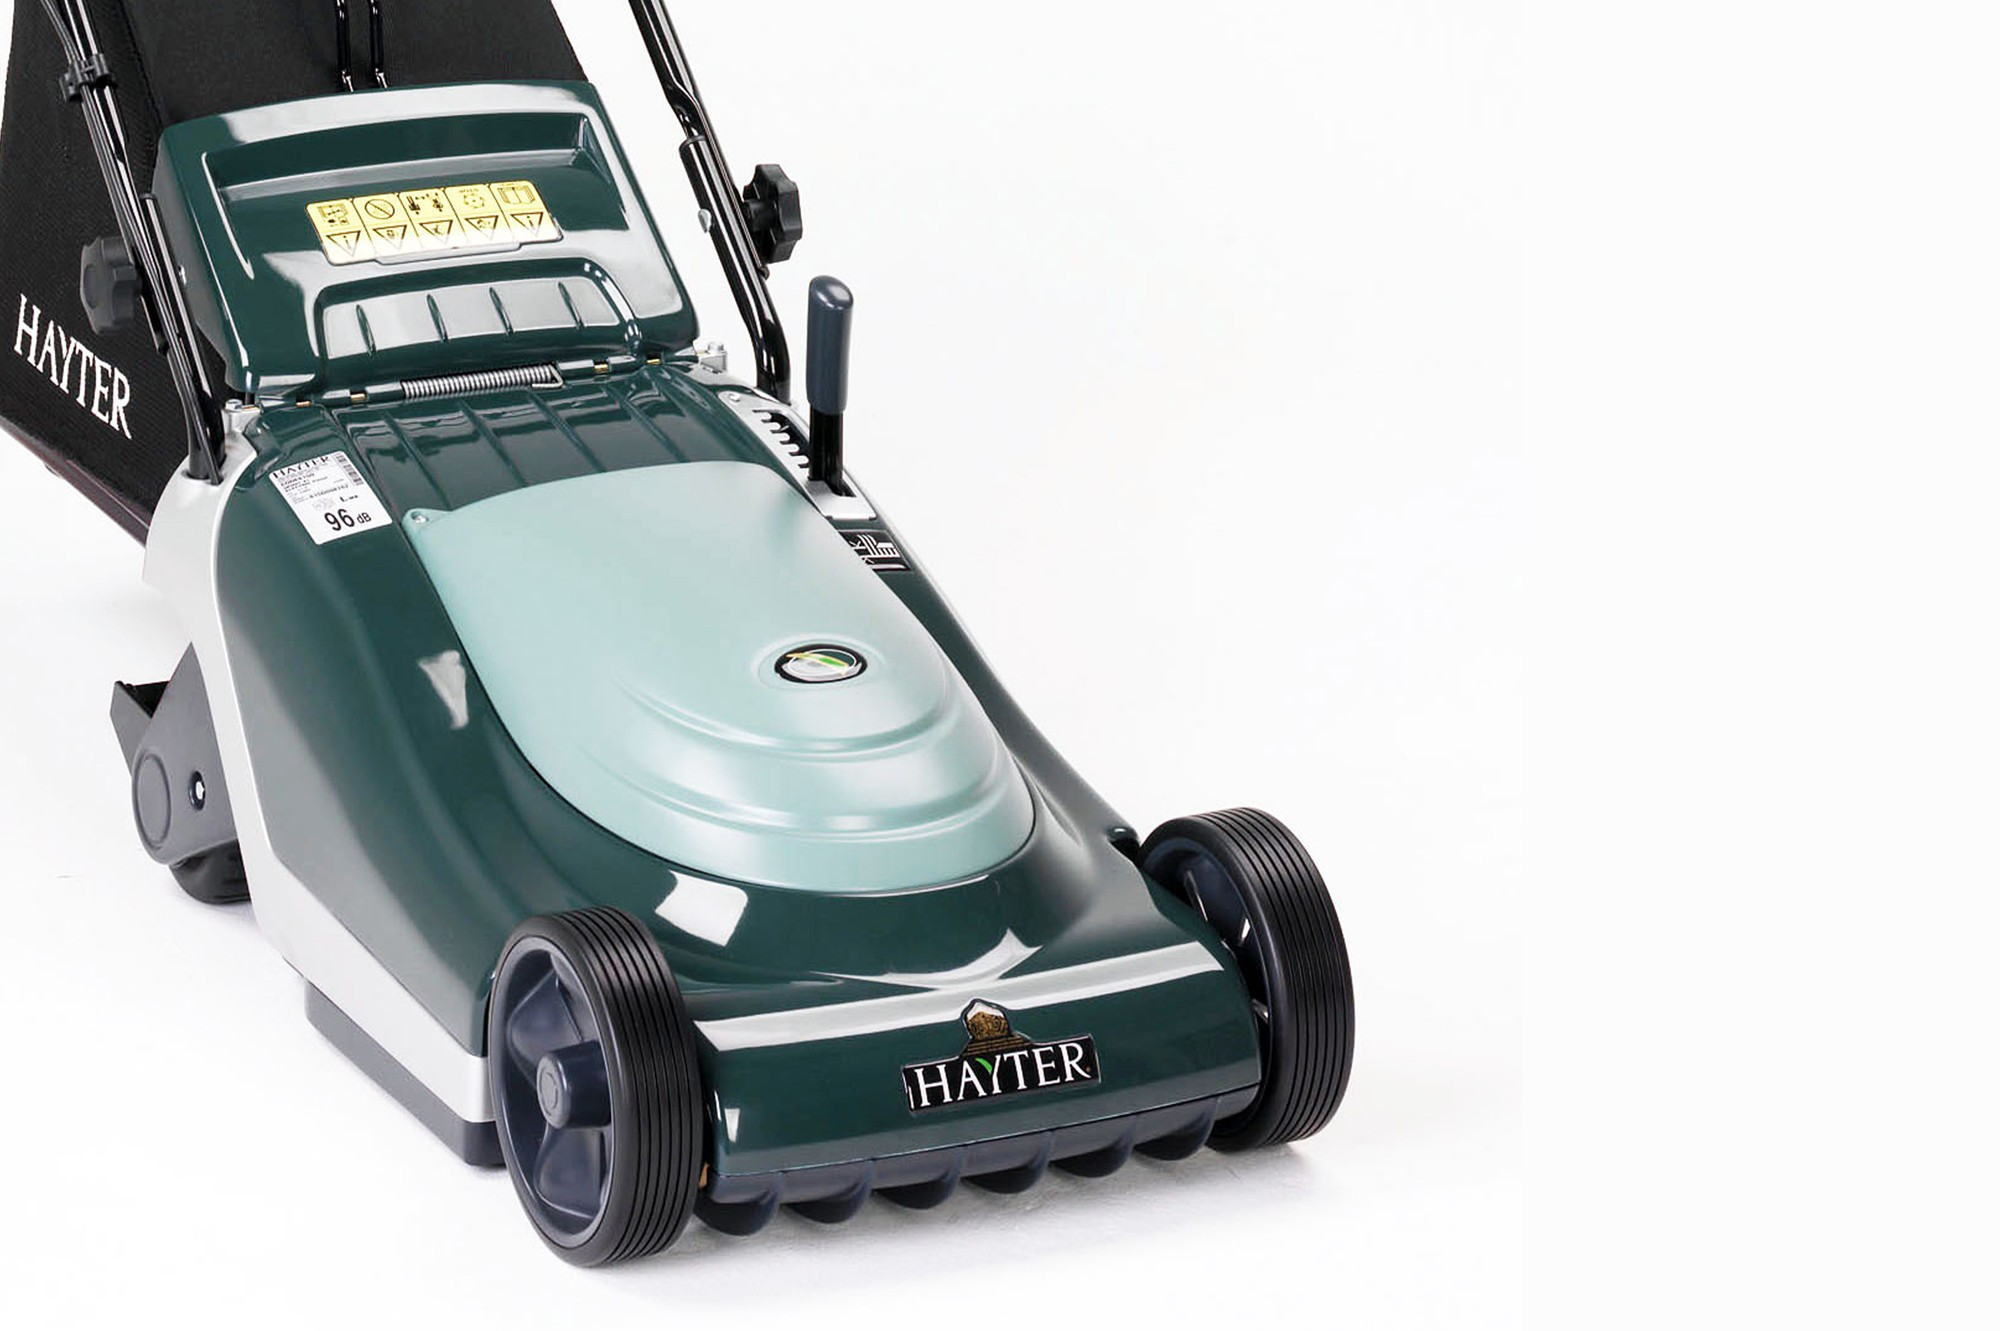 Working model of a Hayter electric lawn mower